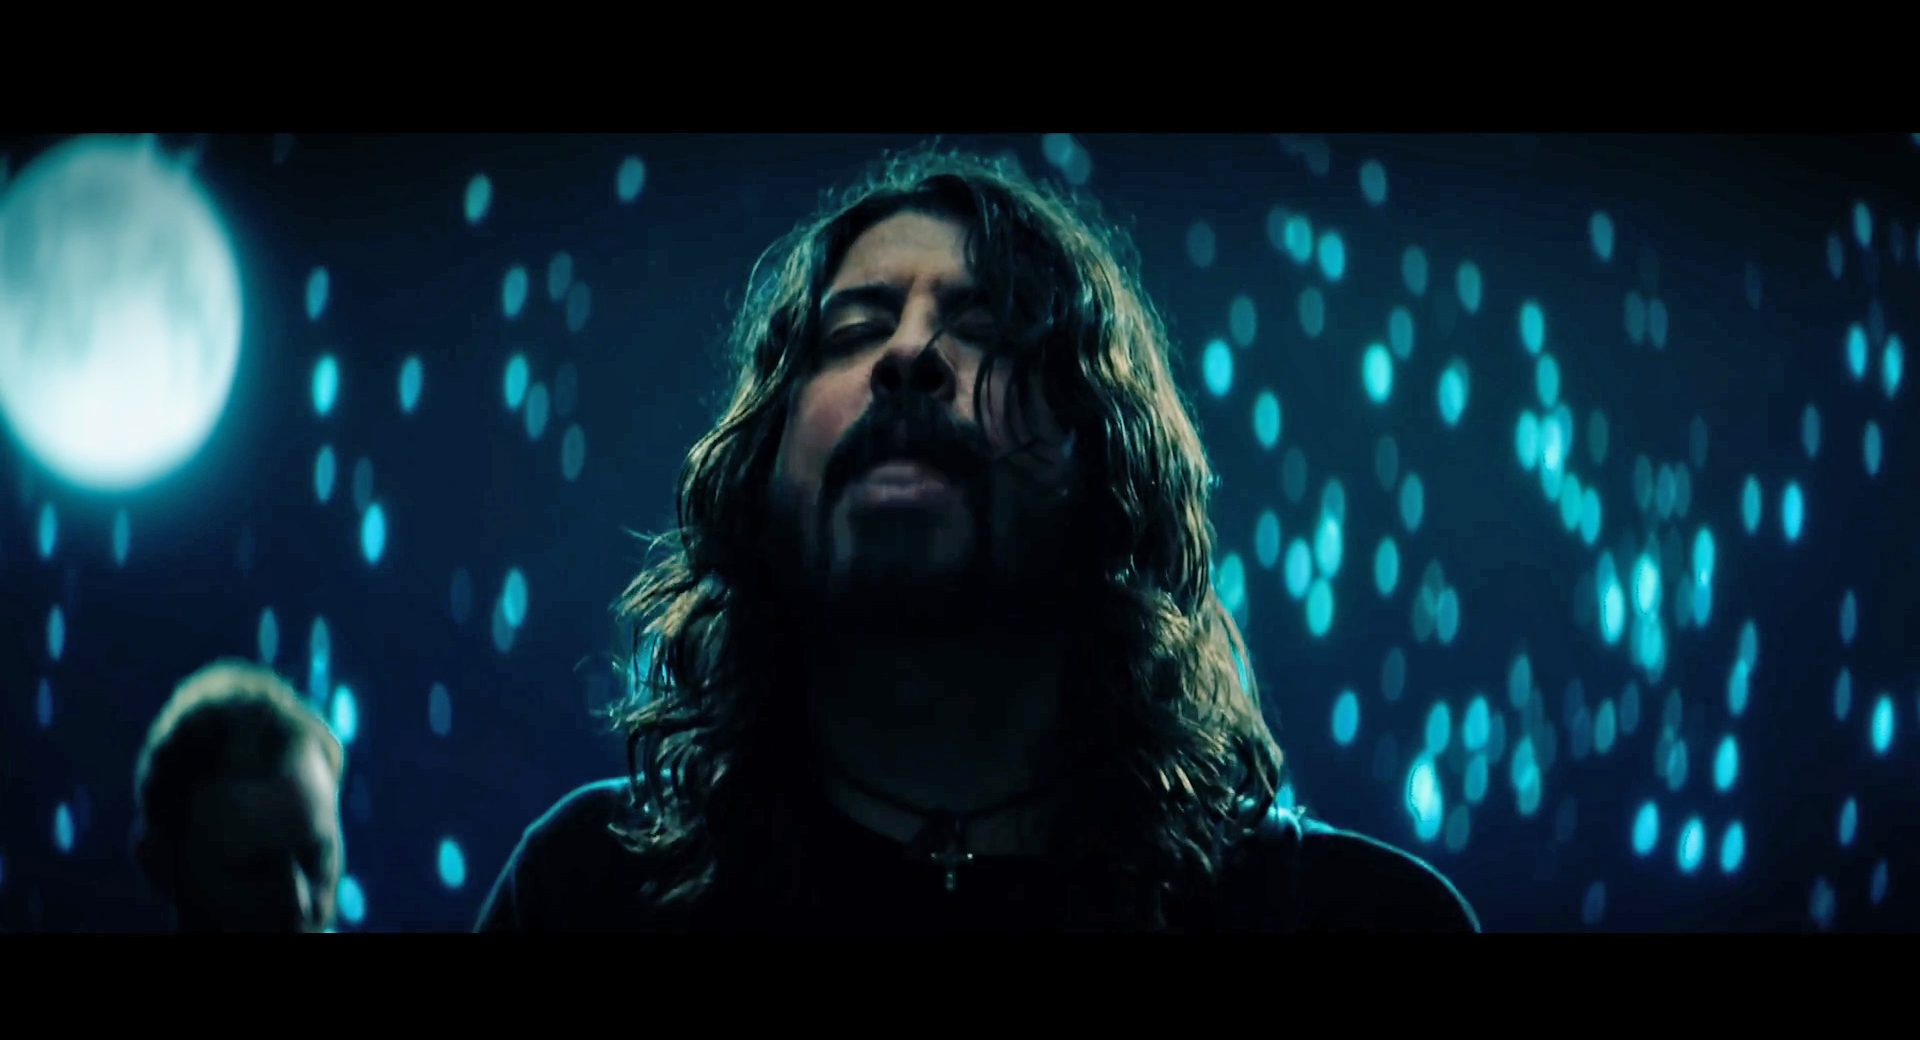 Dave Grohl planning to direct feature film